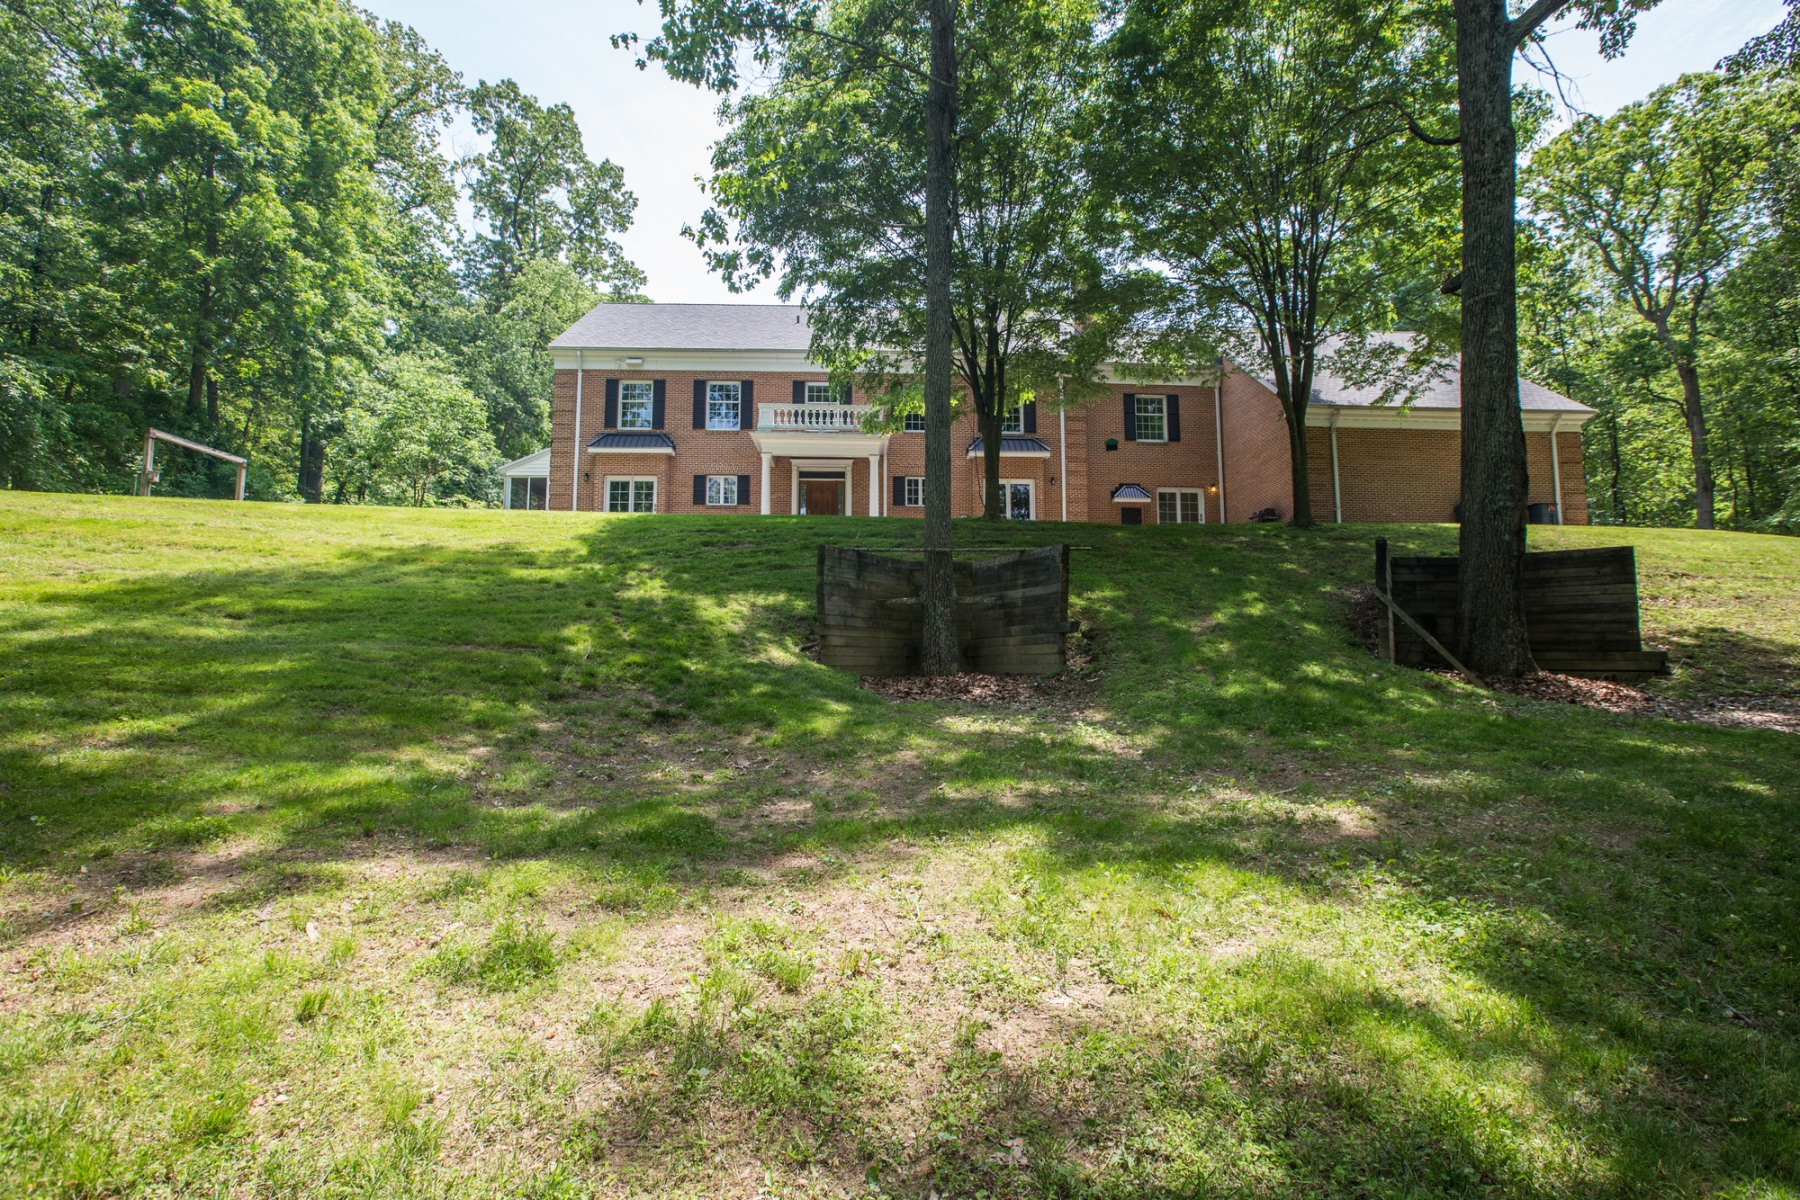 Additional photo for property listing at 13850 Russell Zepp Drive, Clarksville  Clarksville, Μεριλαντ 21029 Ηνωμενεσ Πολιτειεσ